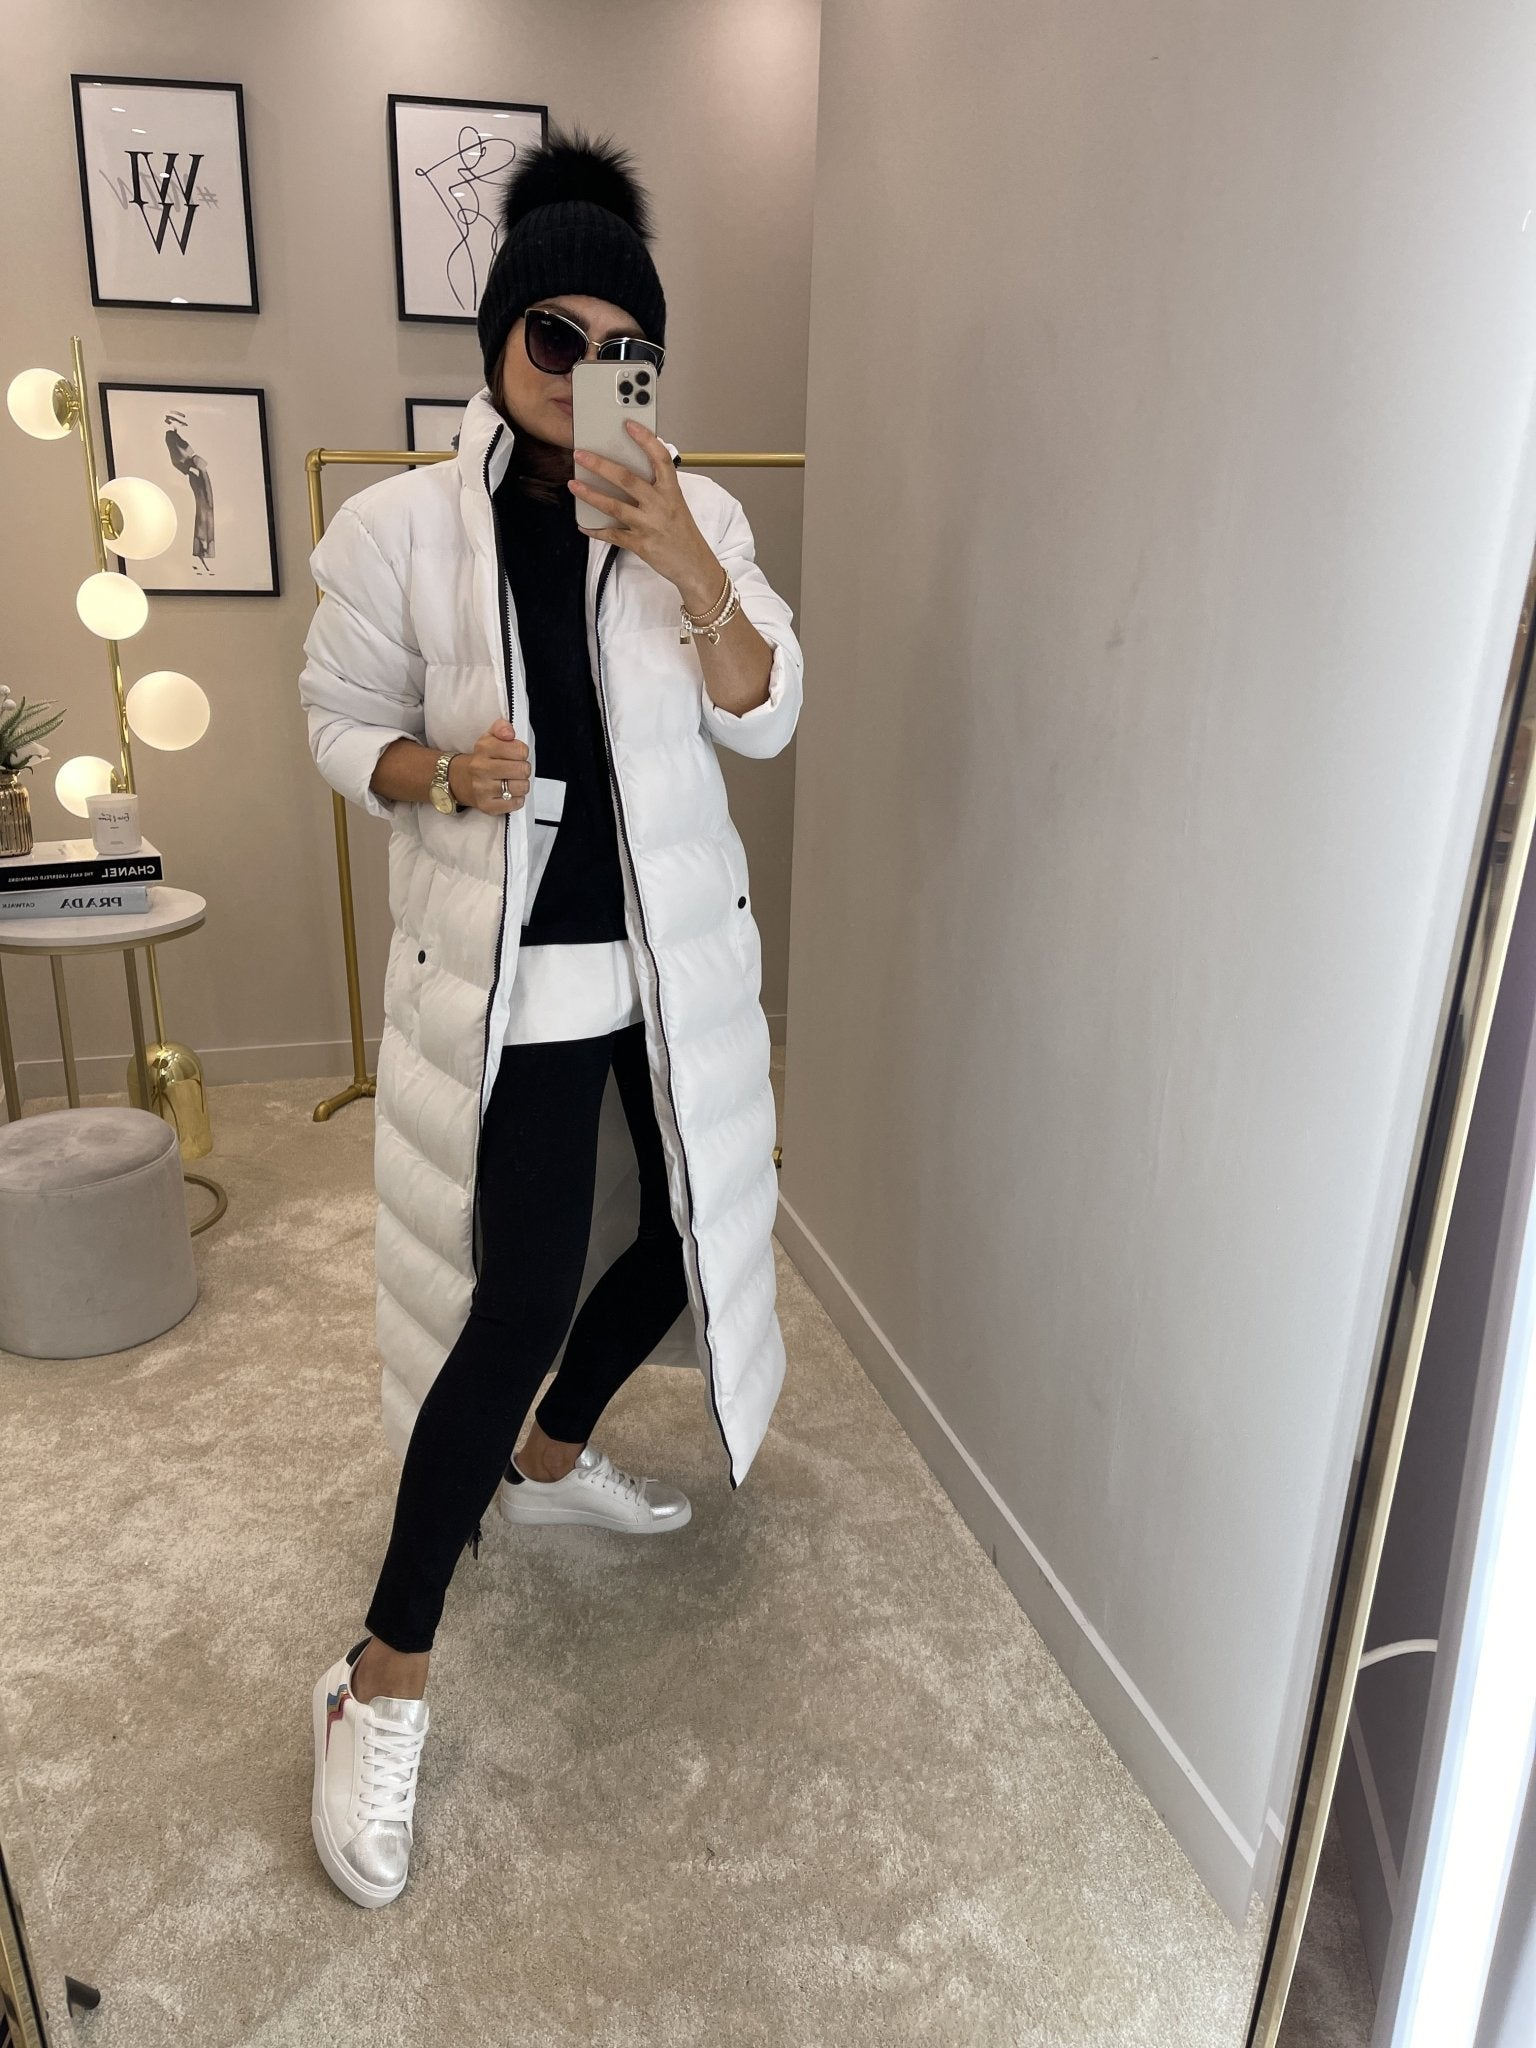 Jade Longline Puffa Coat In White - The Walk in Wardrobe